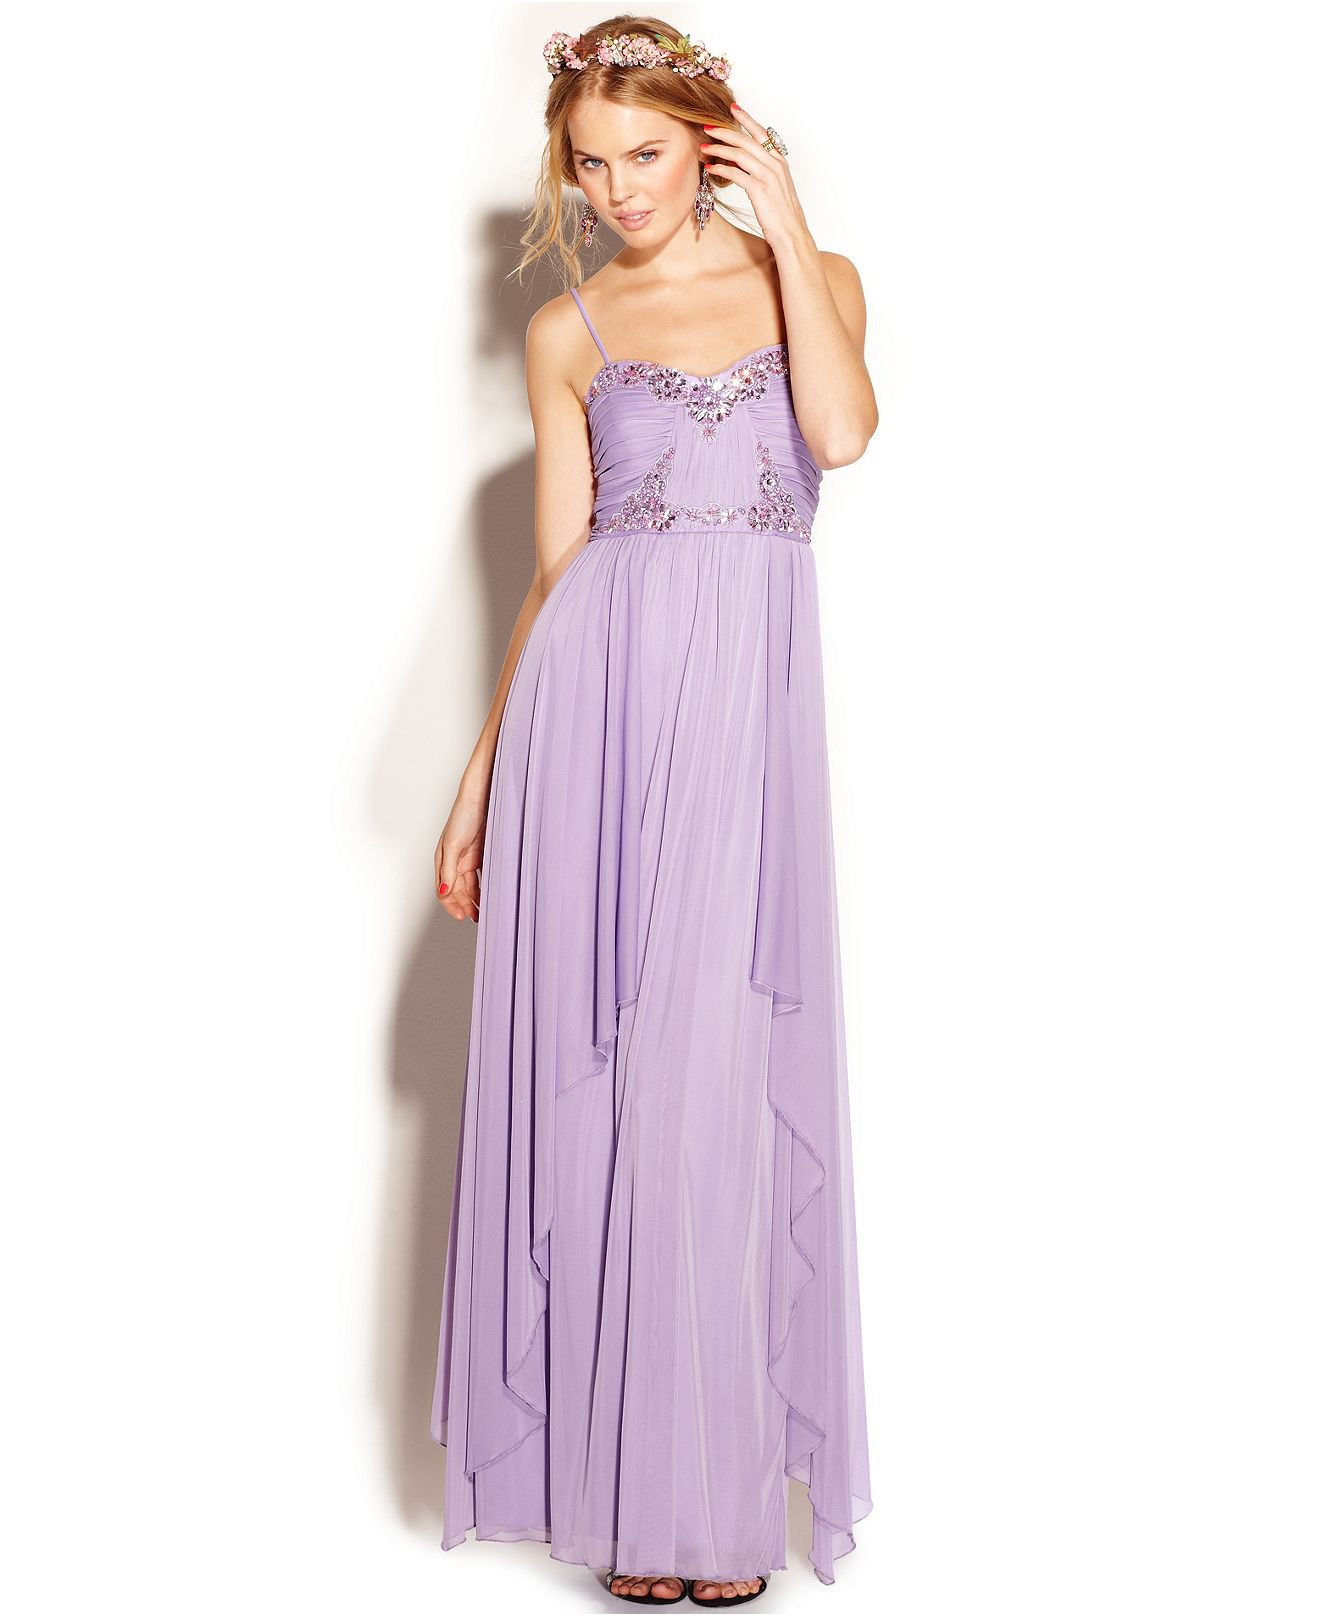 Macys bridesmaid dresses wedding dresses in jax macys bridesmaid dresses 82 ombrellifo Images